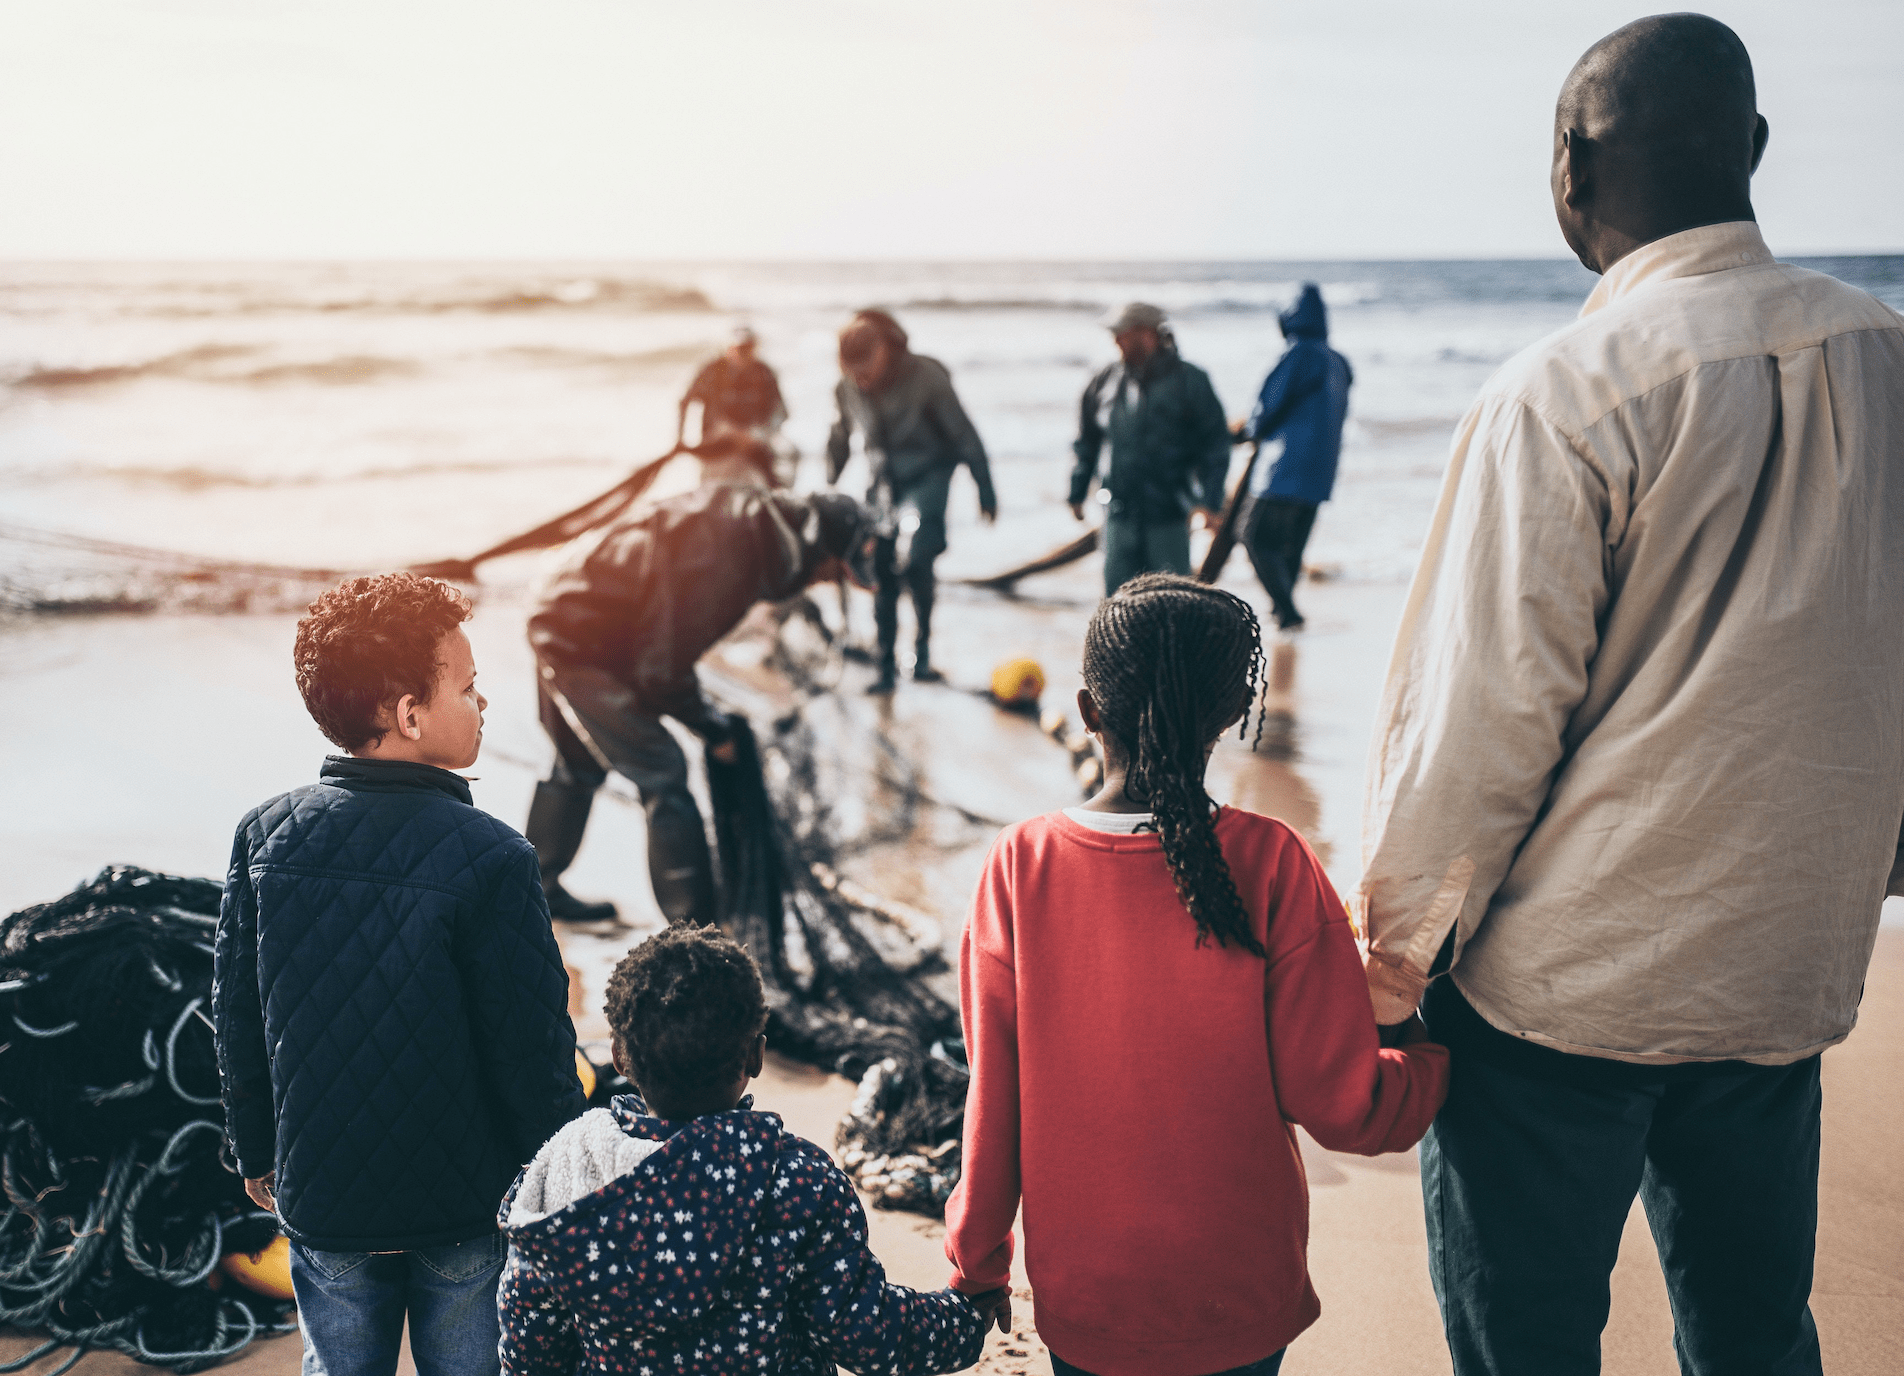 What did Jesus teach about immigrants and refugees?